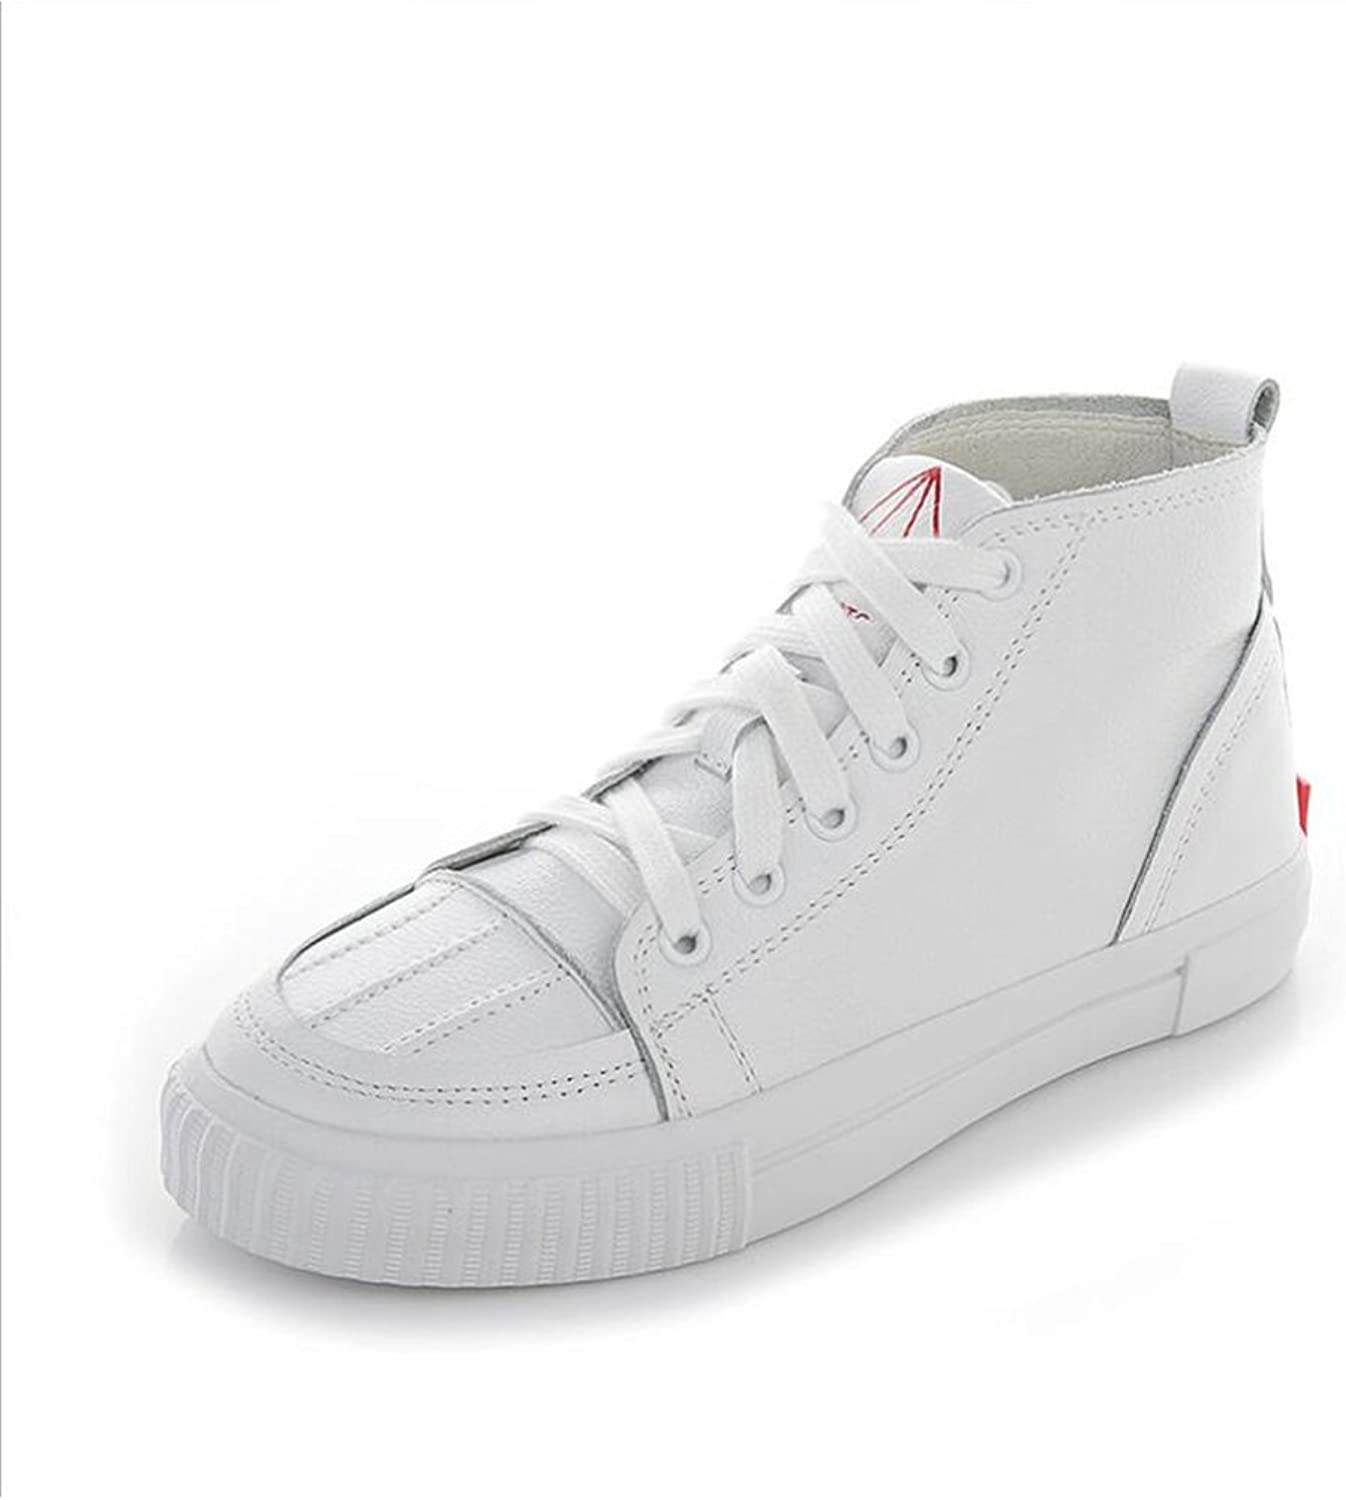 Jiang Women's shoes New Hollow Flat High-top Deck shoes,Breathable Academy Canvas shoes,Spring Fall Small White shoes Sneakers